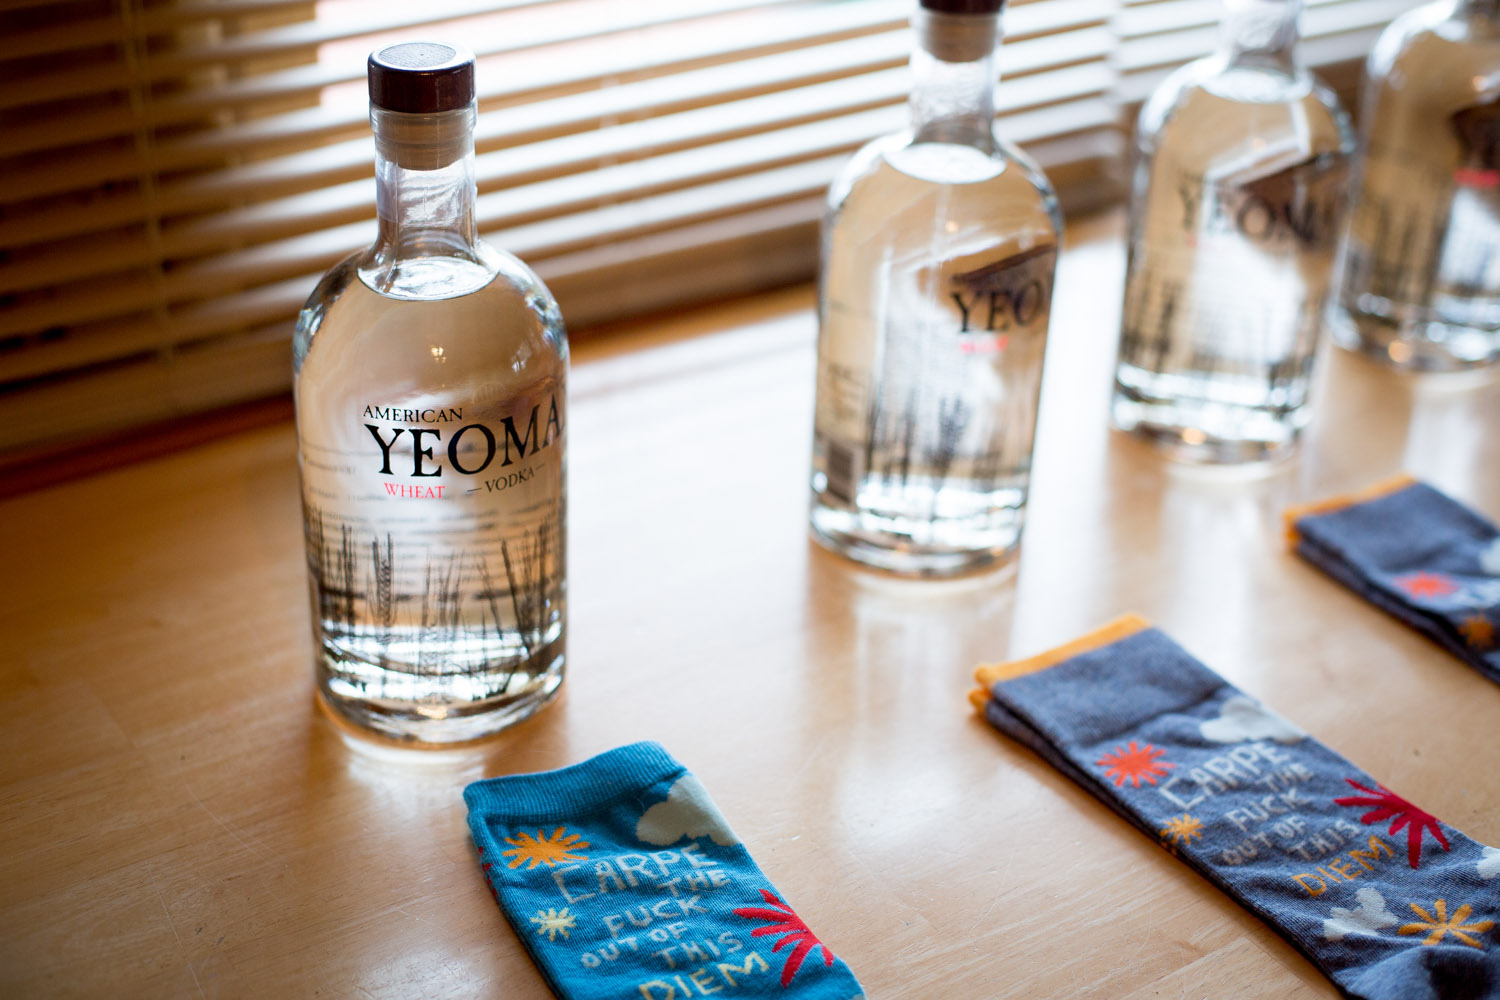 04-cabin-wedding-groomsmen-gifts-yeoman-vodka-funny-socks-carpe-the-fuck-out-of-this-diem